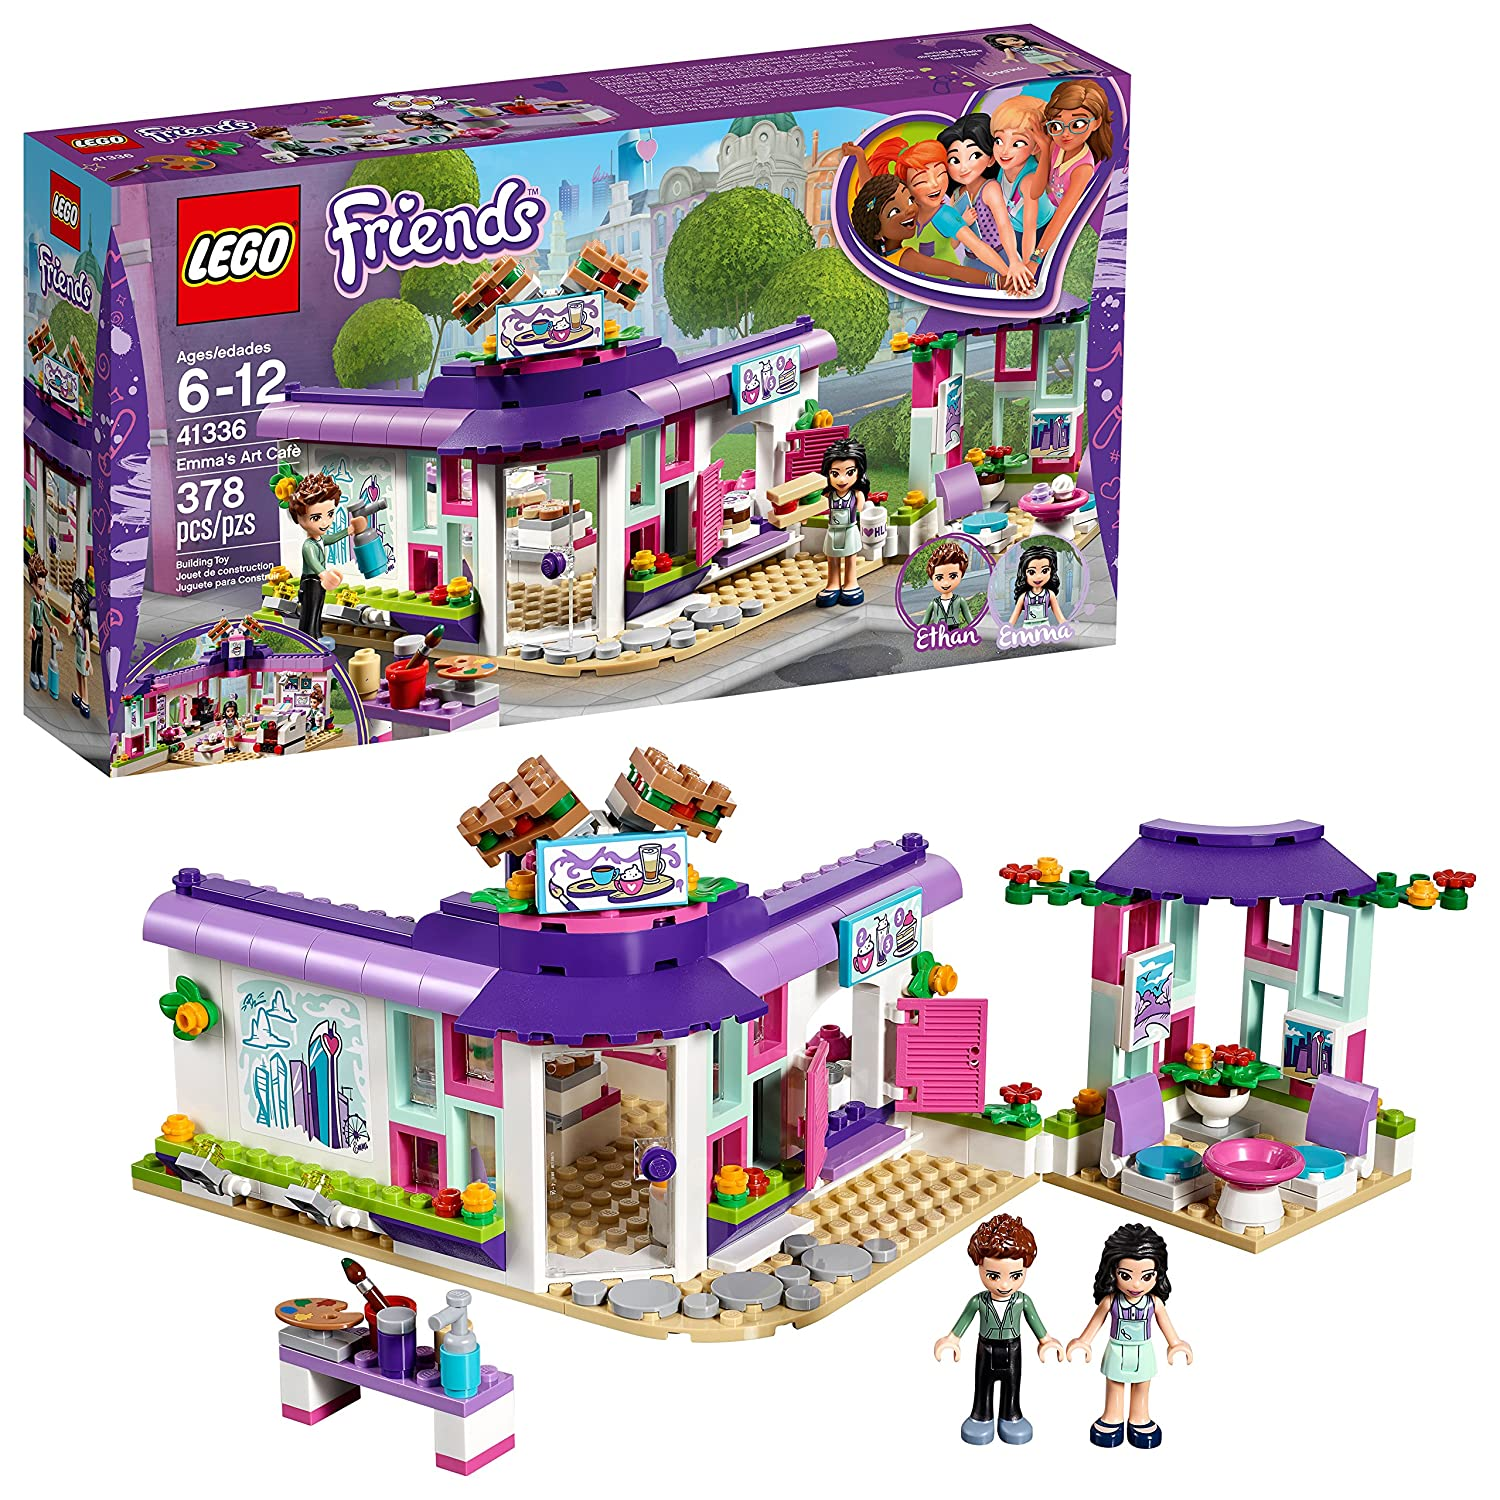 LEGO Friends 6213453 Emma's Art Café 41336 Building Kit (378 Piece)